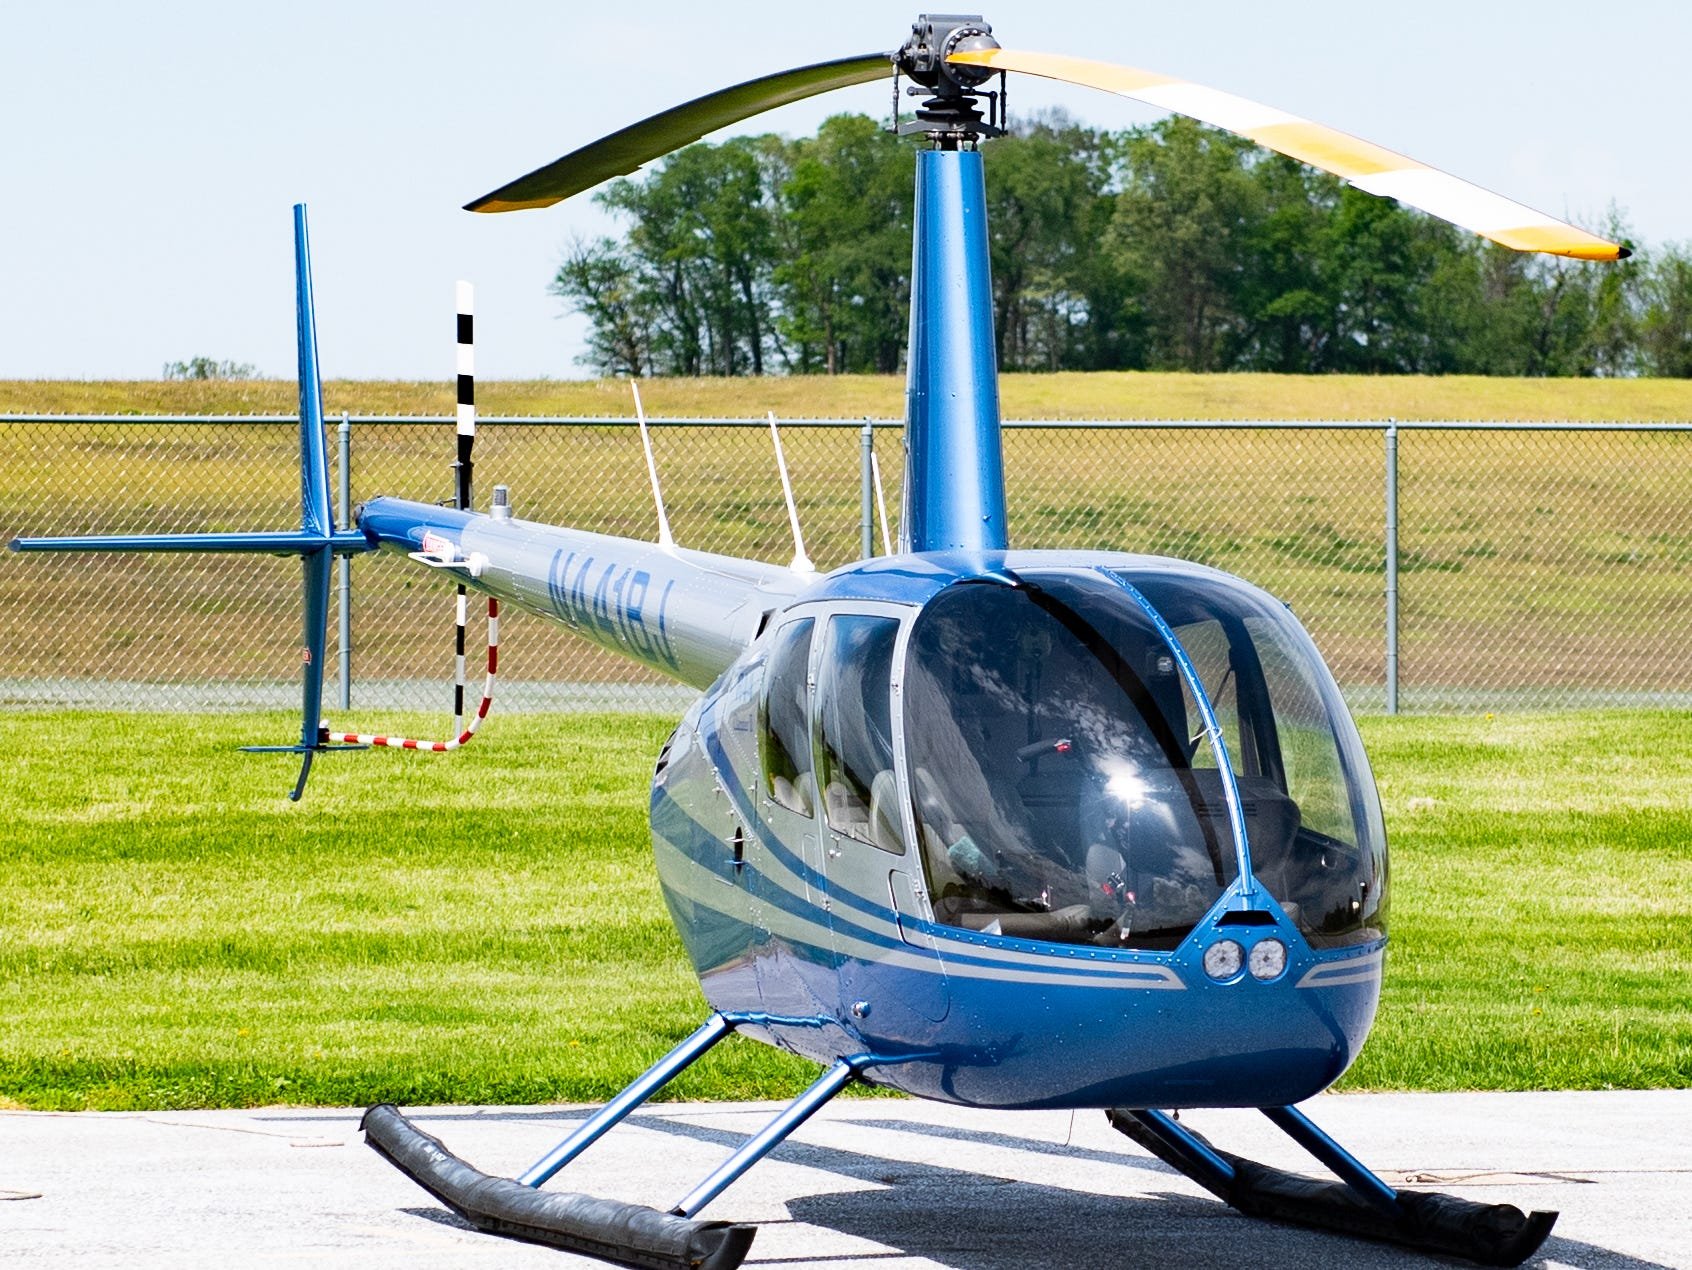 This is Judith Redlawsk's own private four-seat R44 helicopter. She got it with her husband, Bernie, and had it assembled in Torrence, California before the two flew it back to Etters, Pennsylvania.